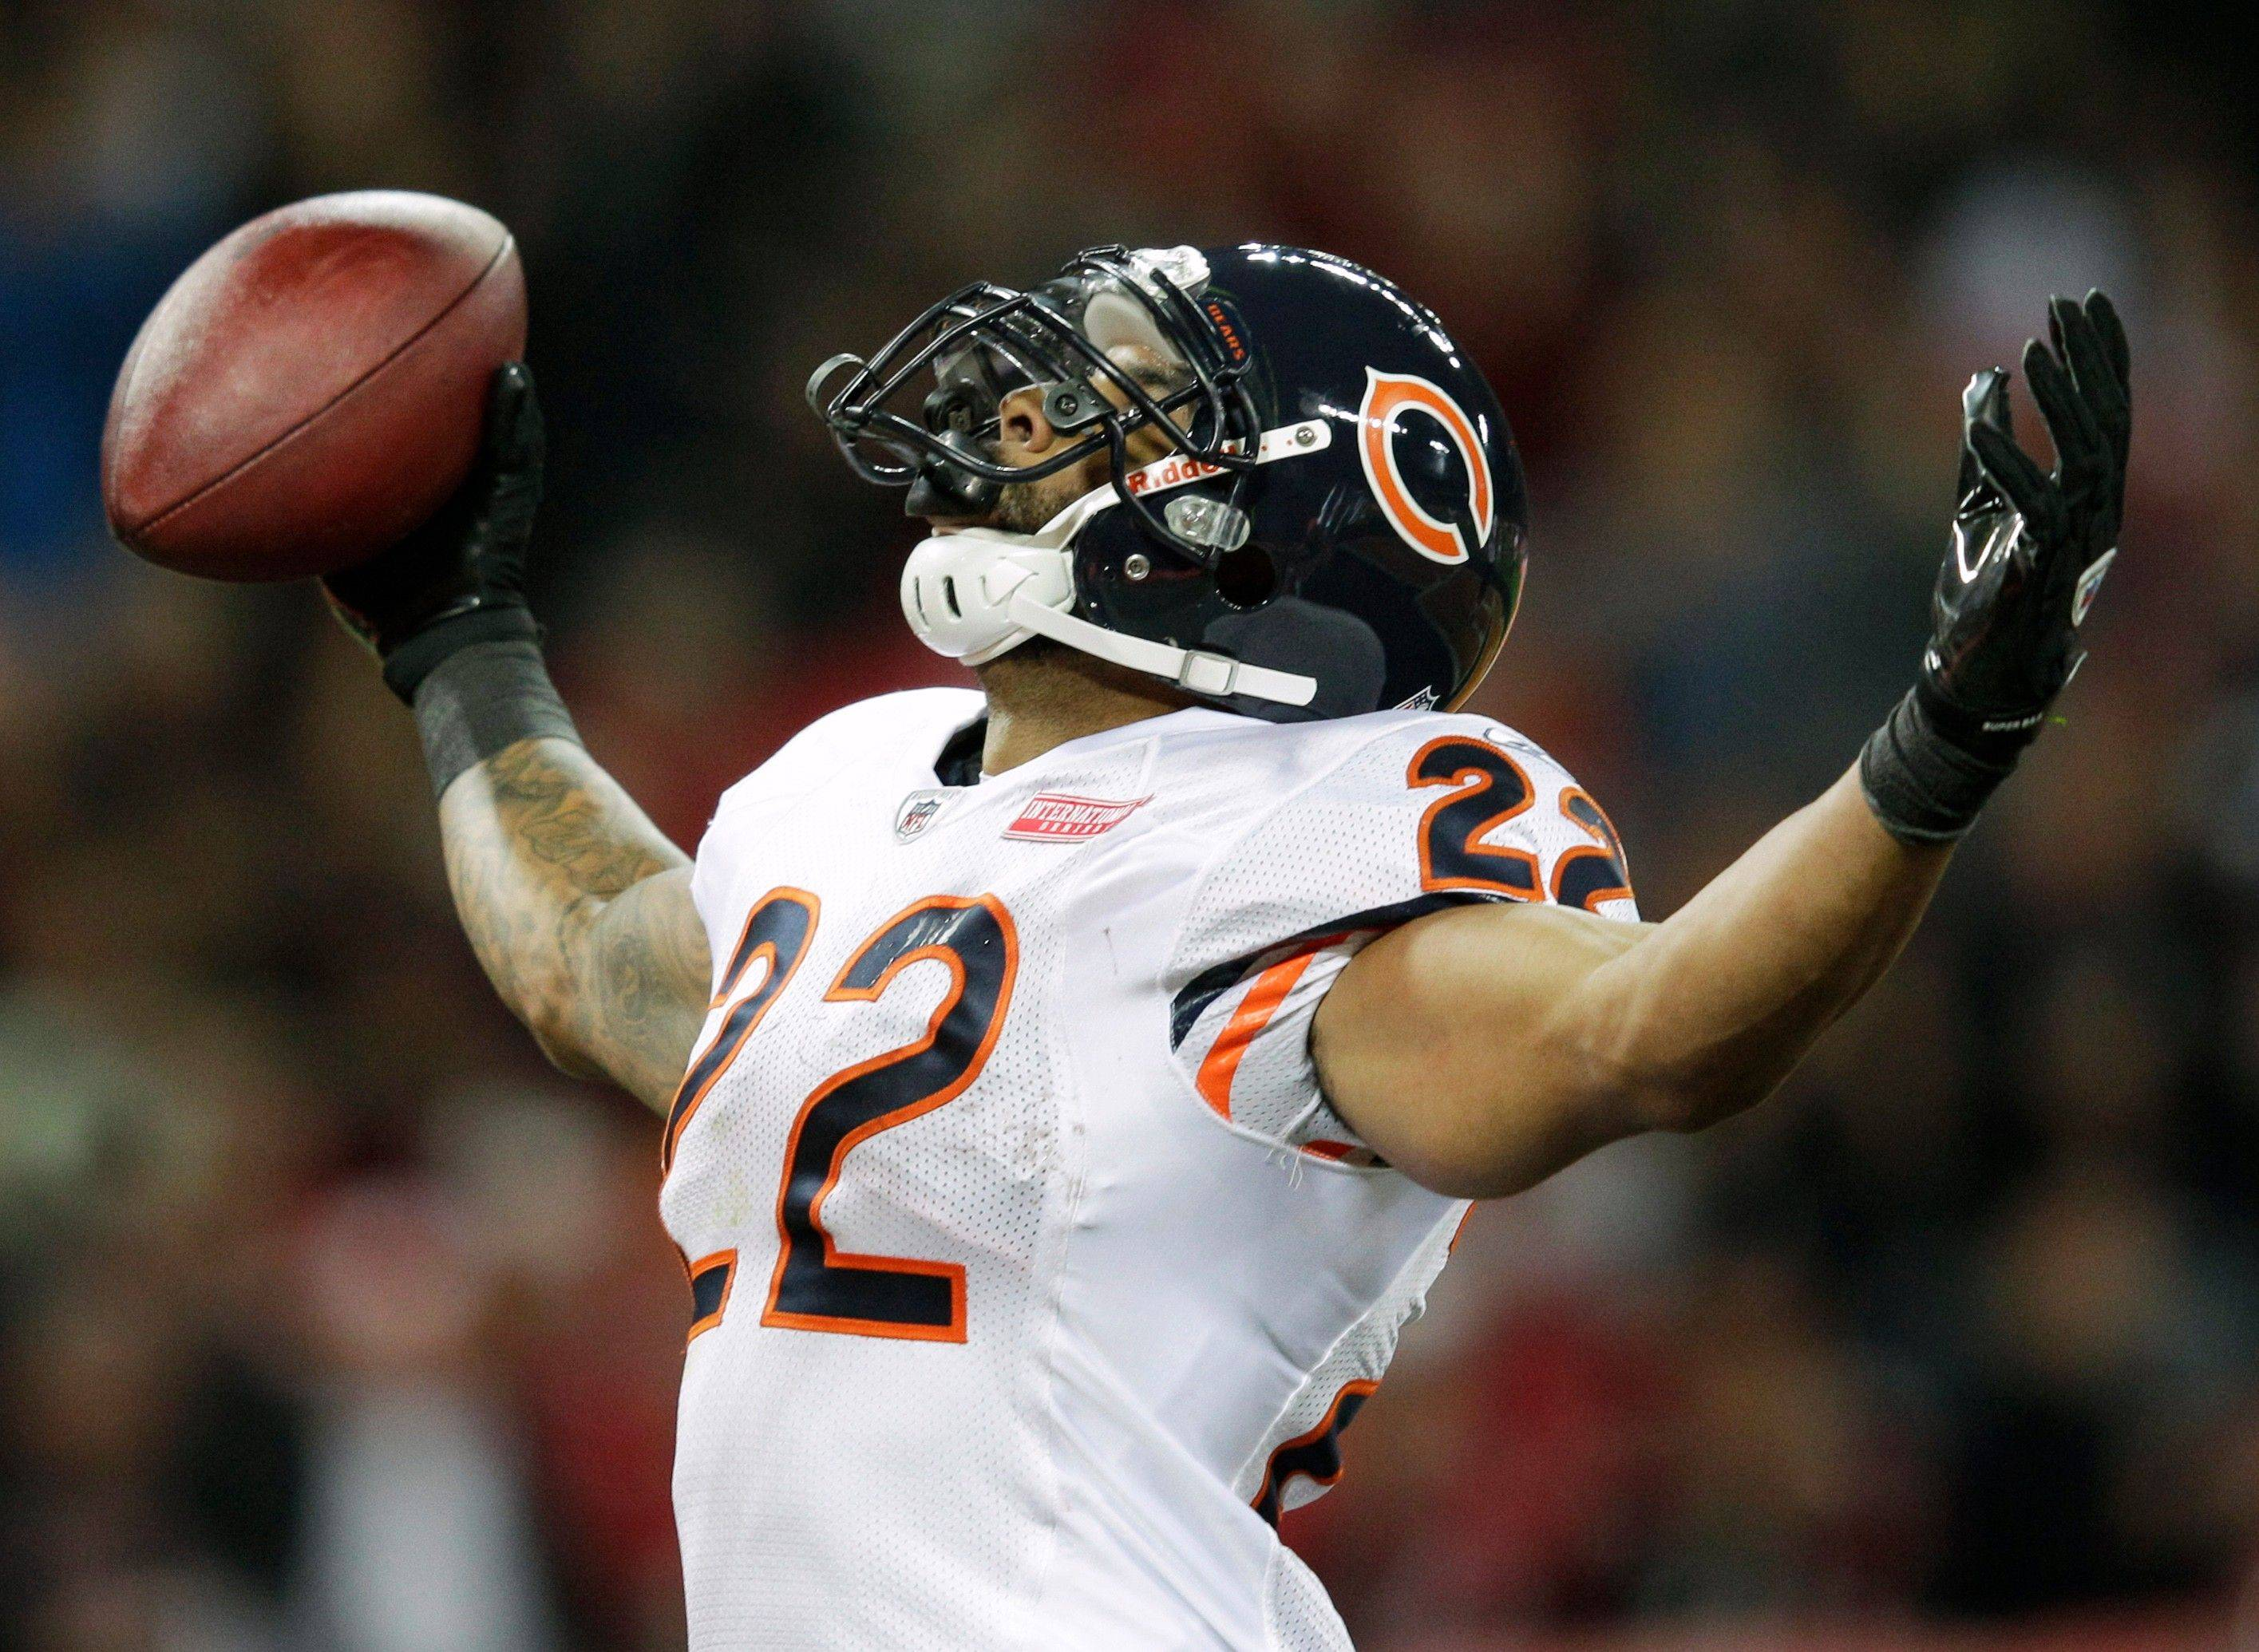 Chicago Bears running back Matt Forte celebrates his 32-yard touchdown during the first half of an NFL football game Sunday, Oct. 23, at Wembley Stadium in London.